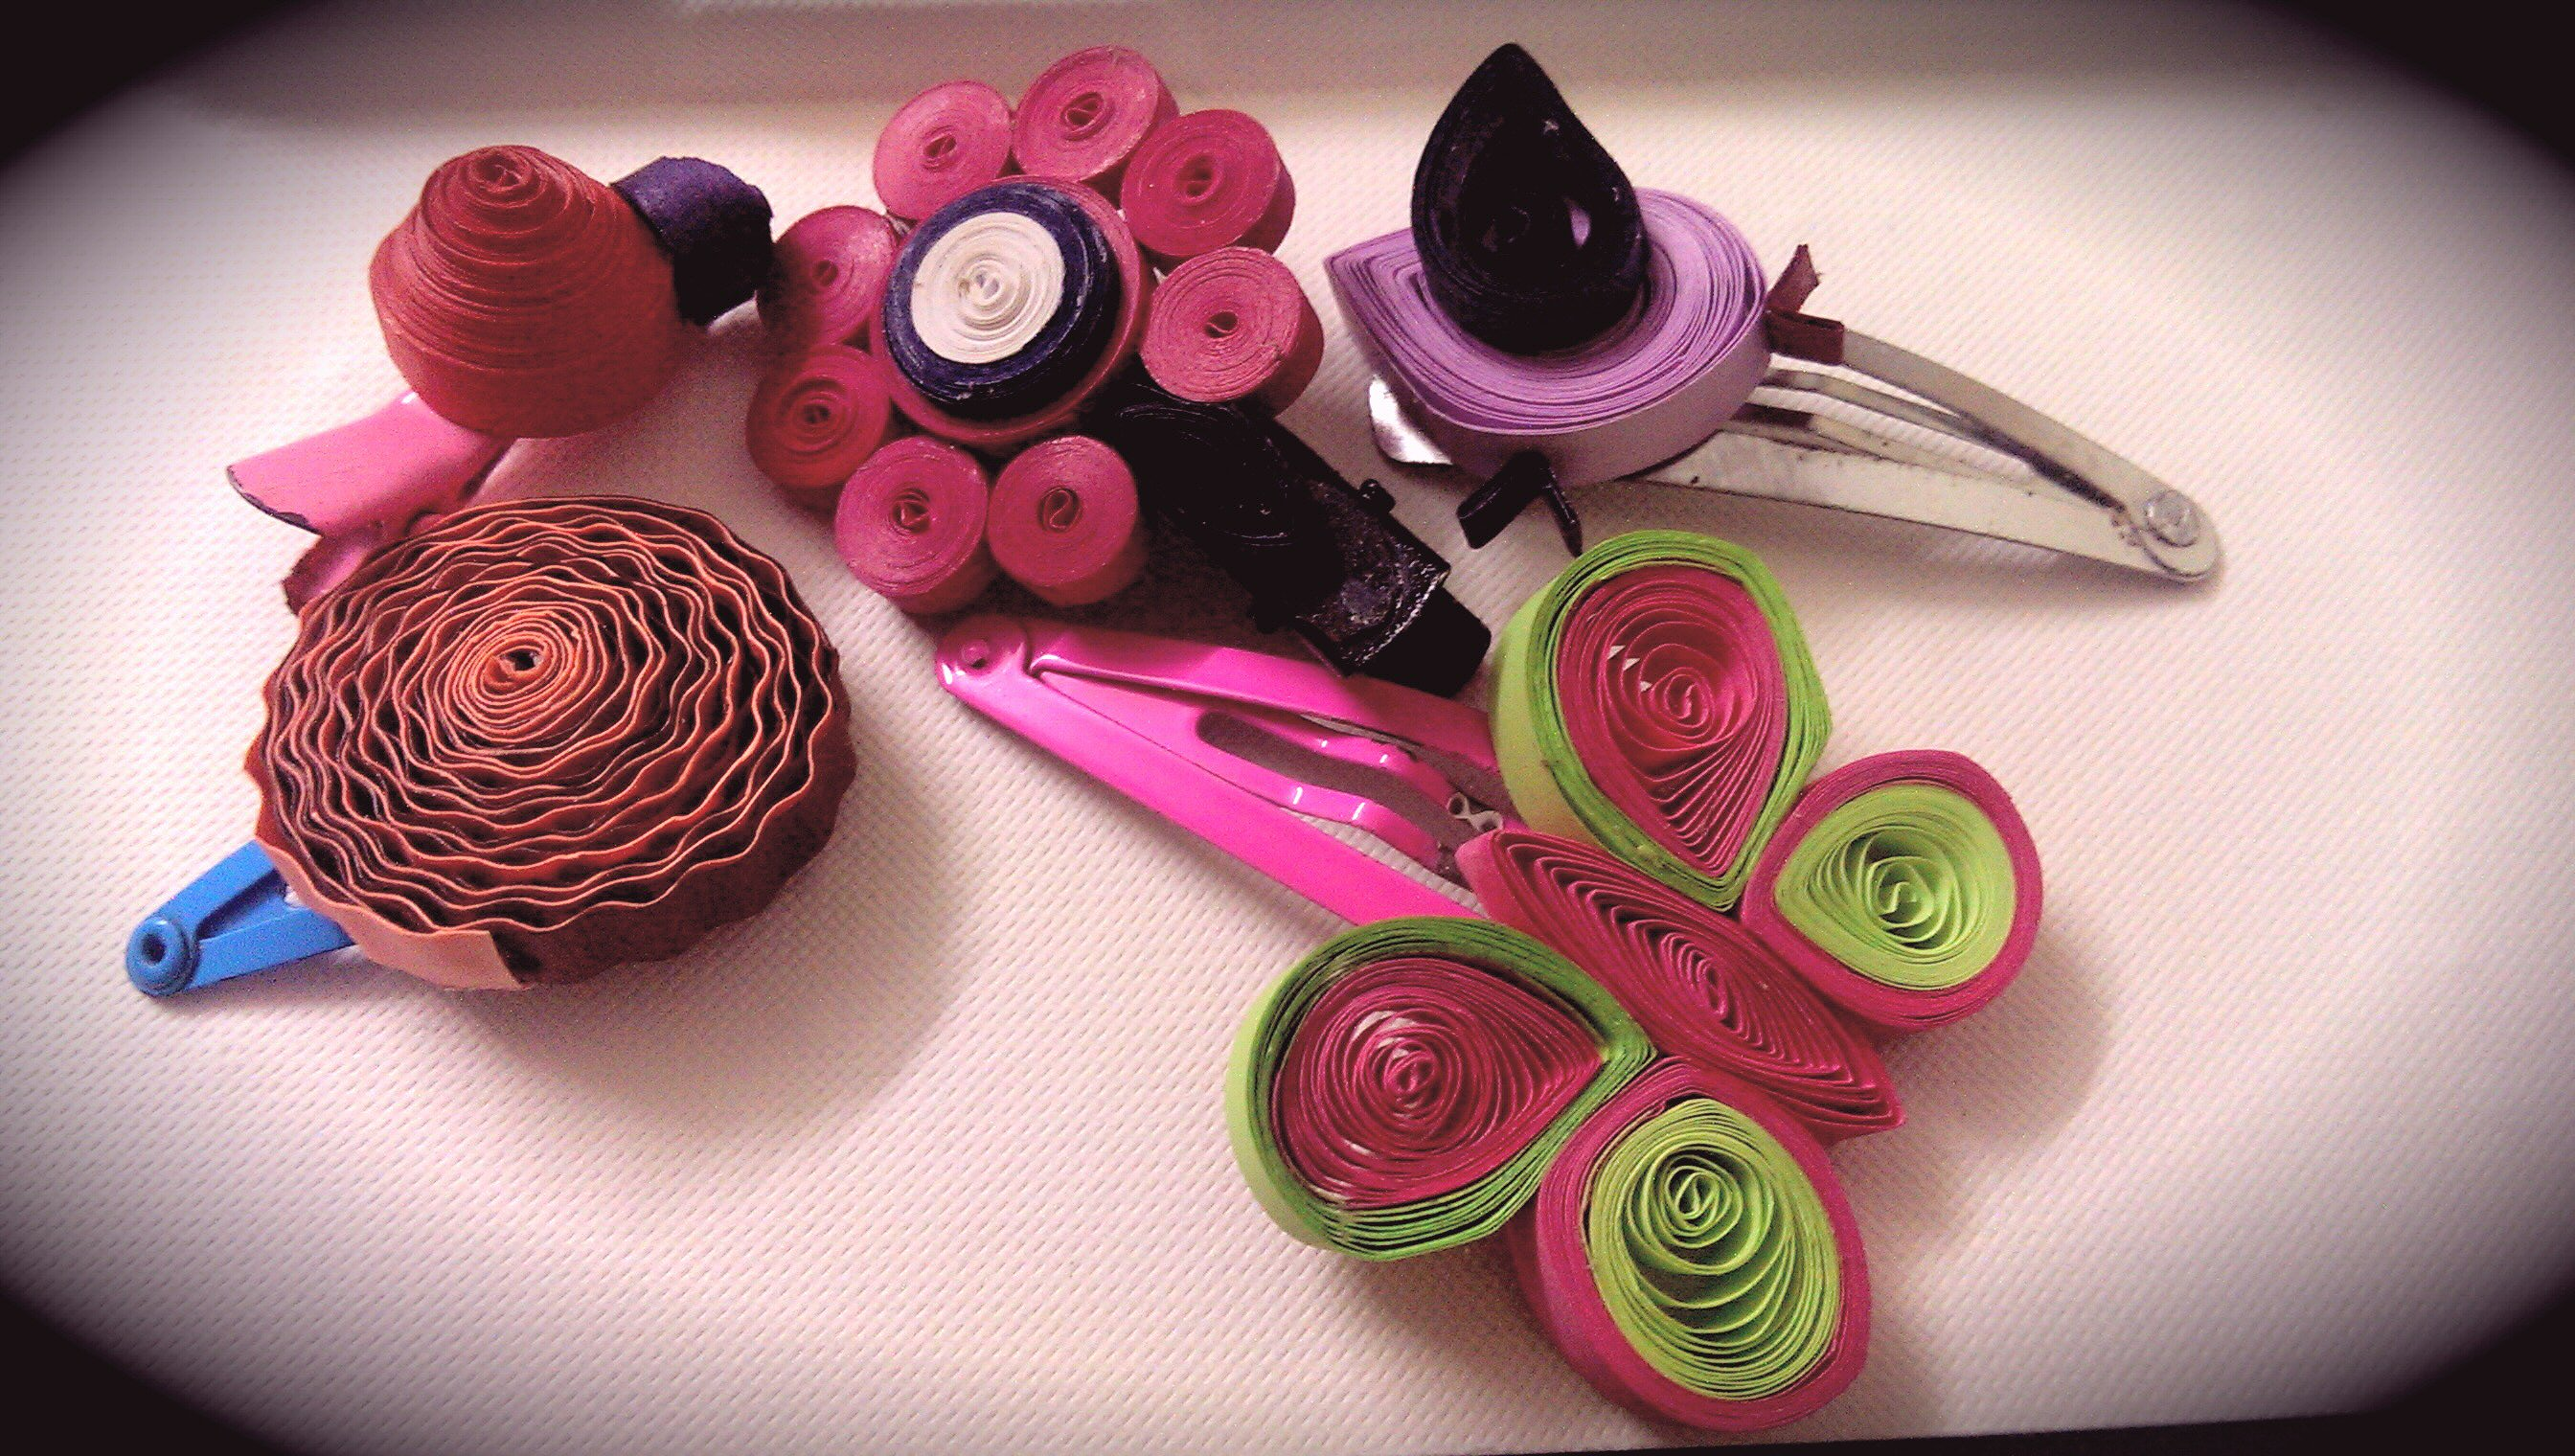 diy hair accessories made with paper quilling technique